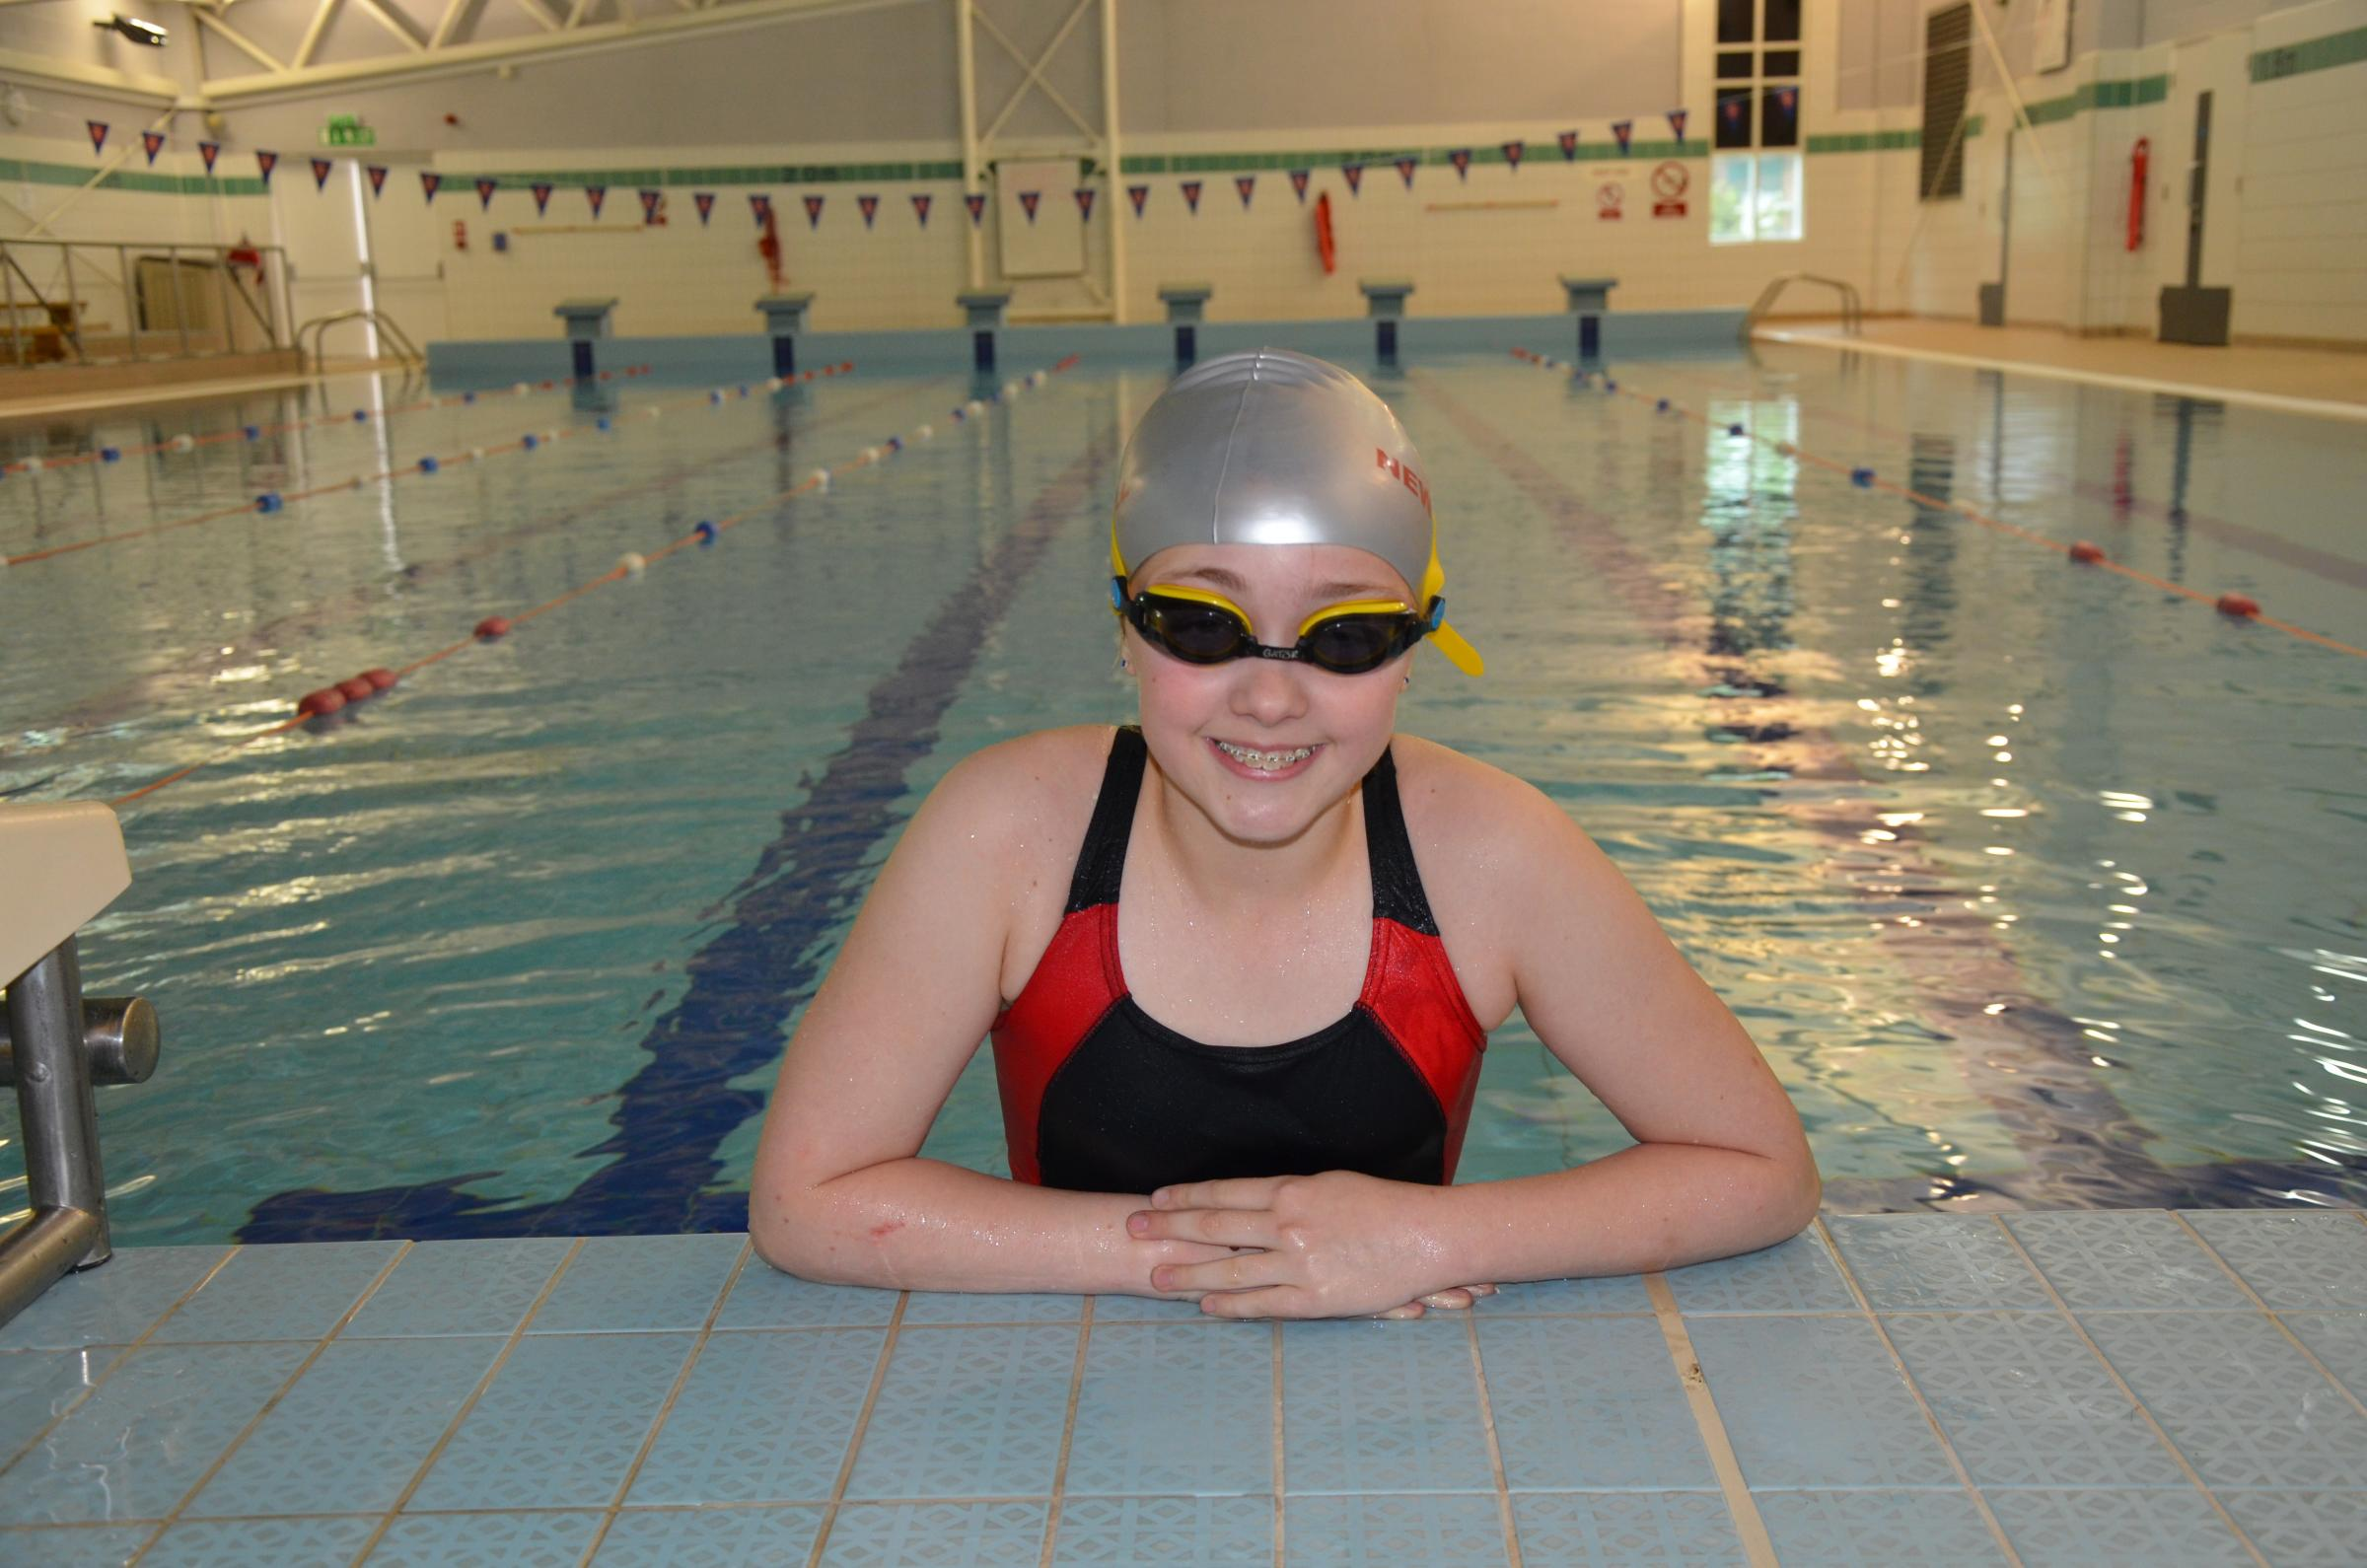 Charley Spriggs in her swimming gear